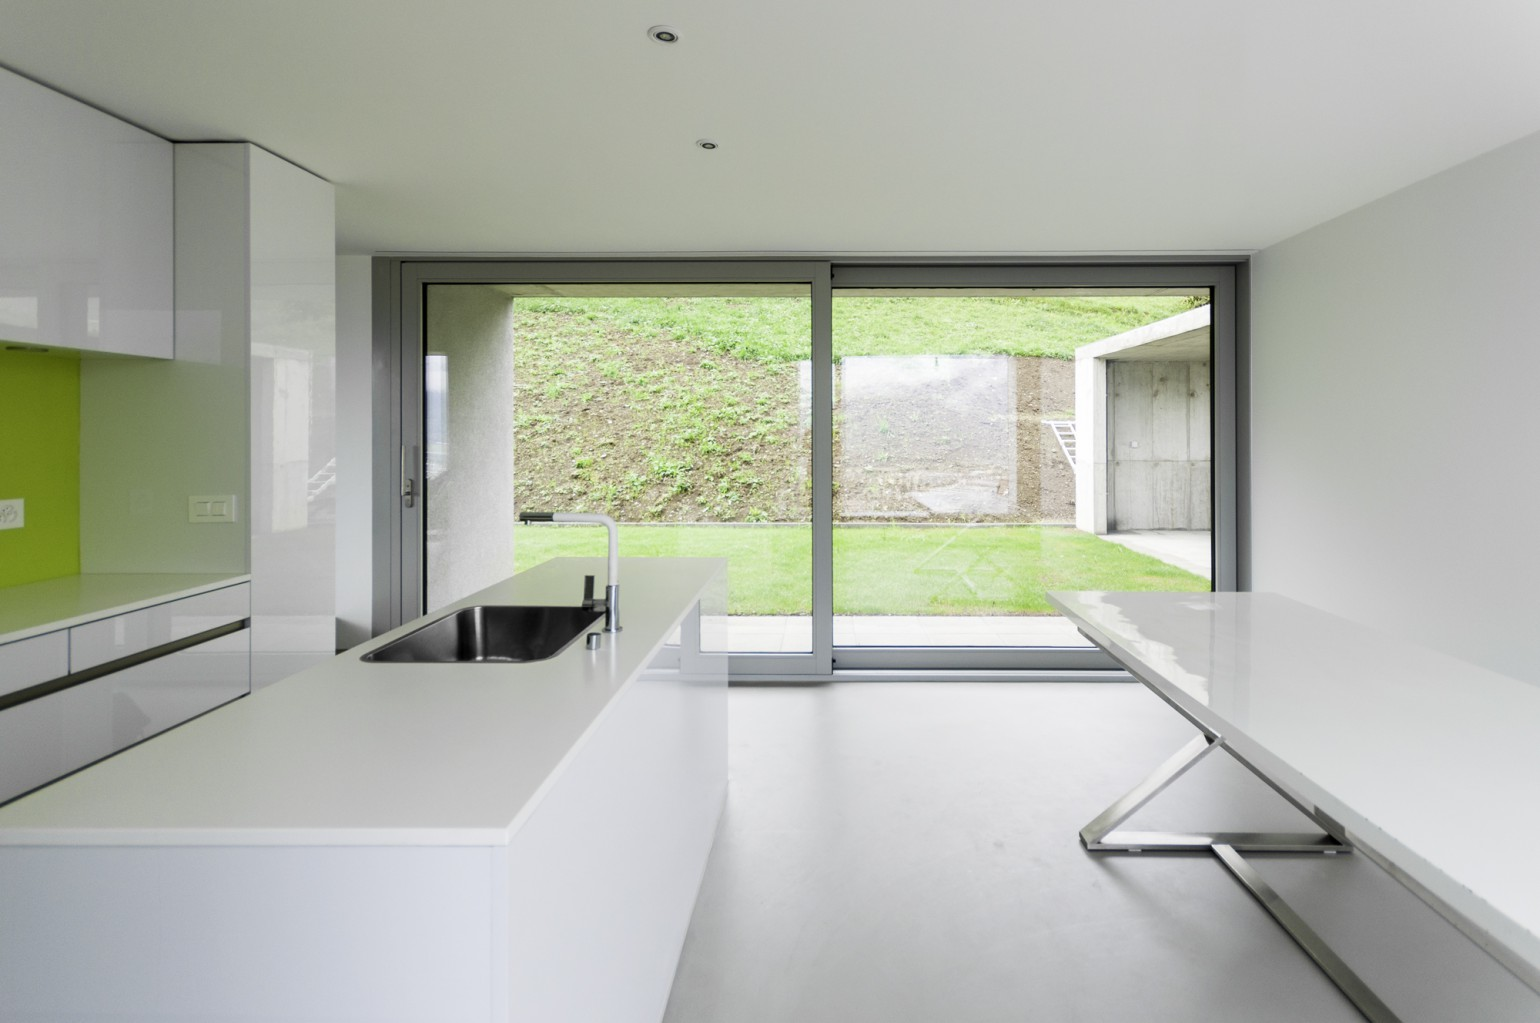 maison_catanese_choex_meyer_architecture_sion_08